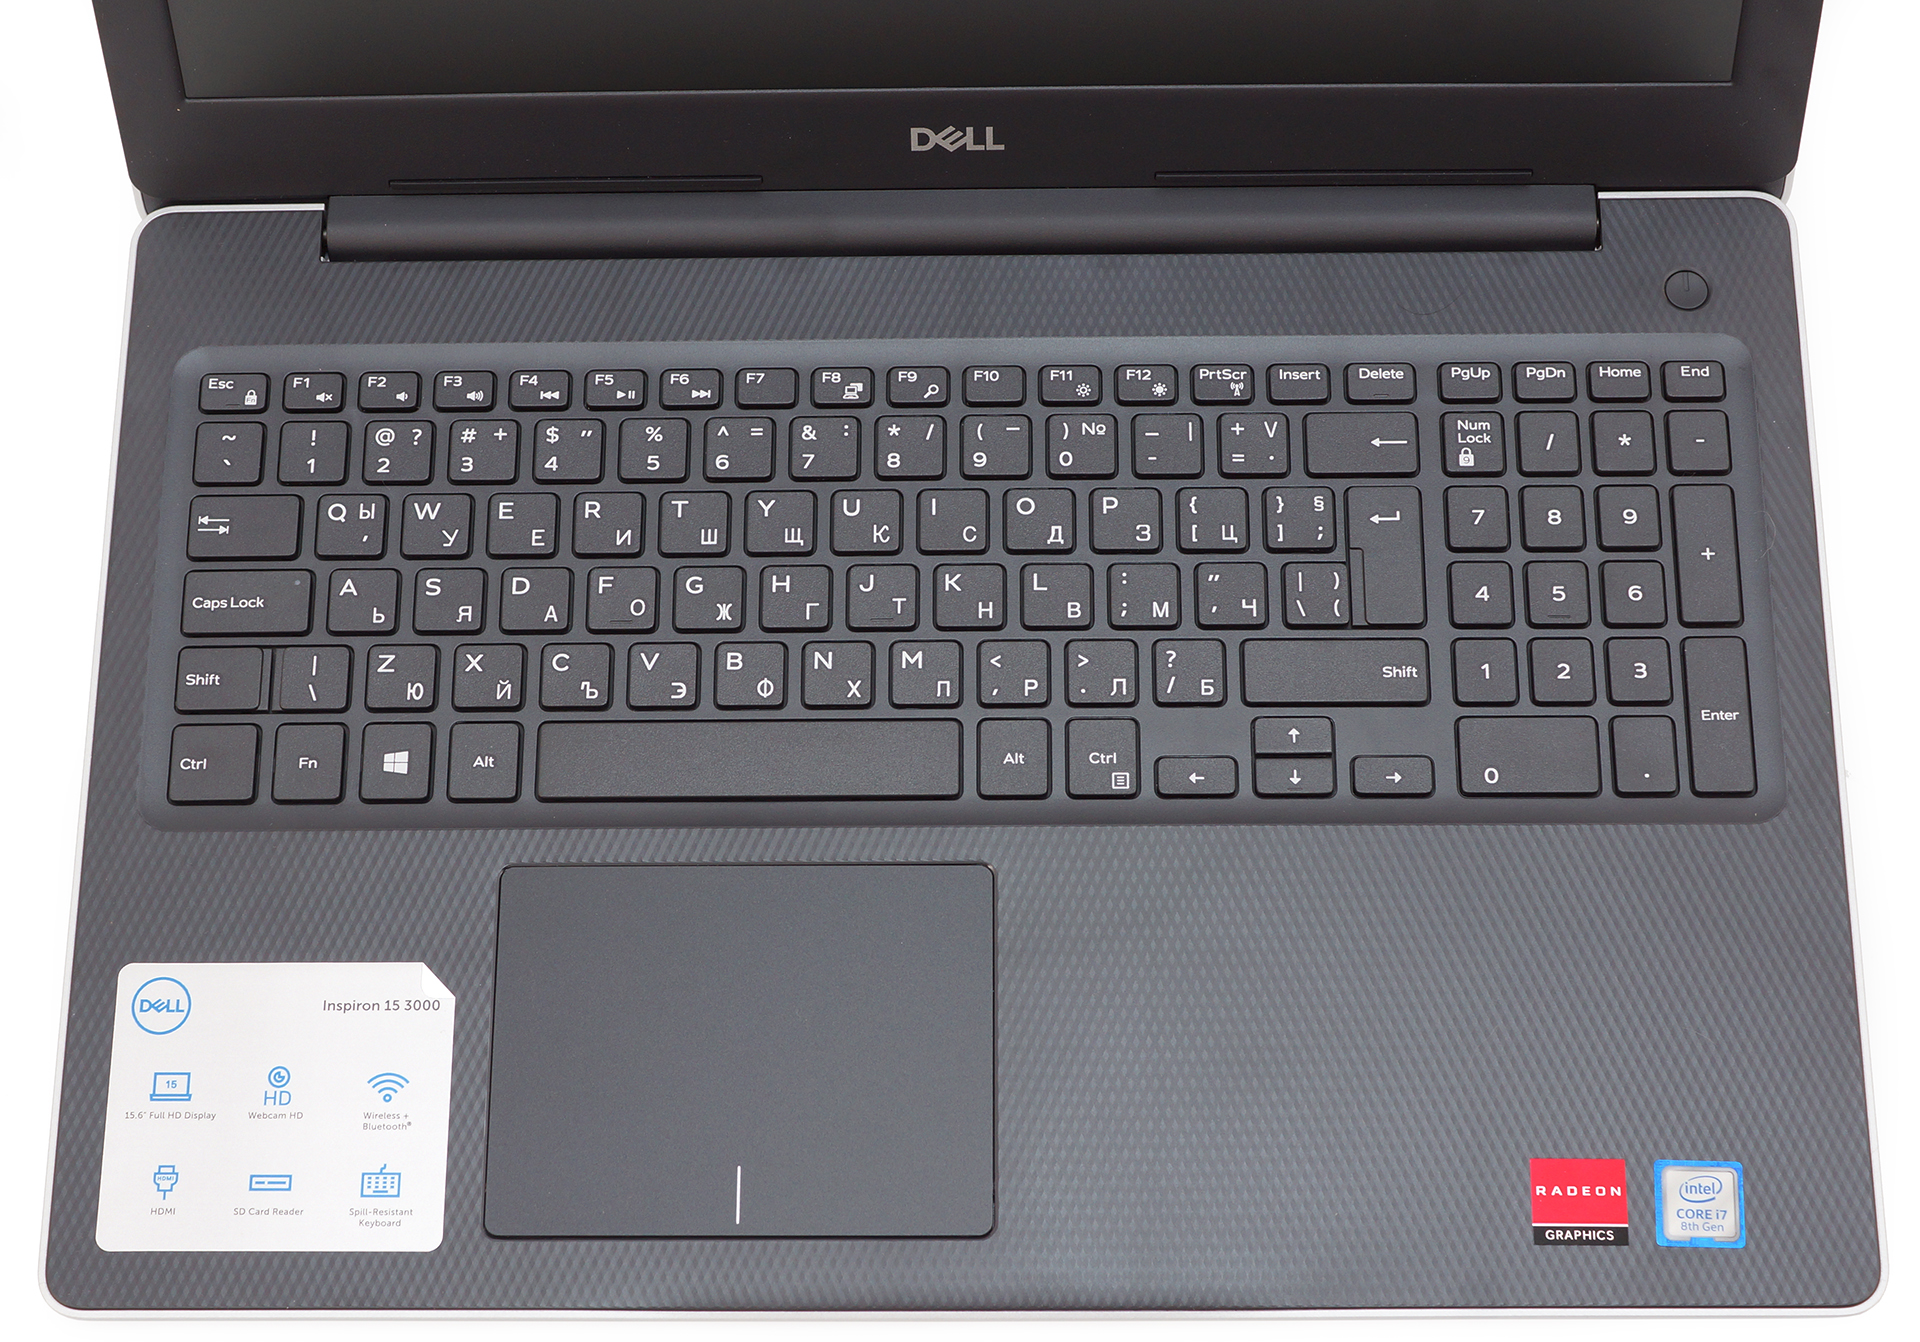 Dell Inspiron 15 3580 reivew – still lacks an IPS display